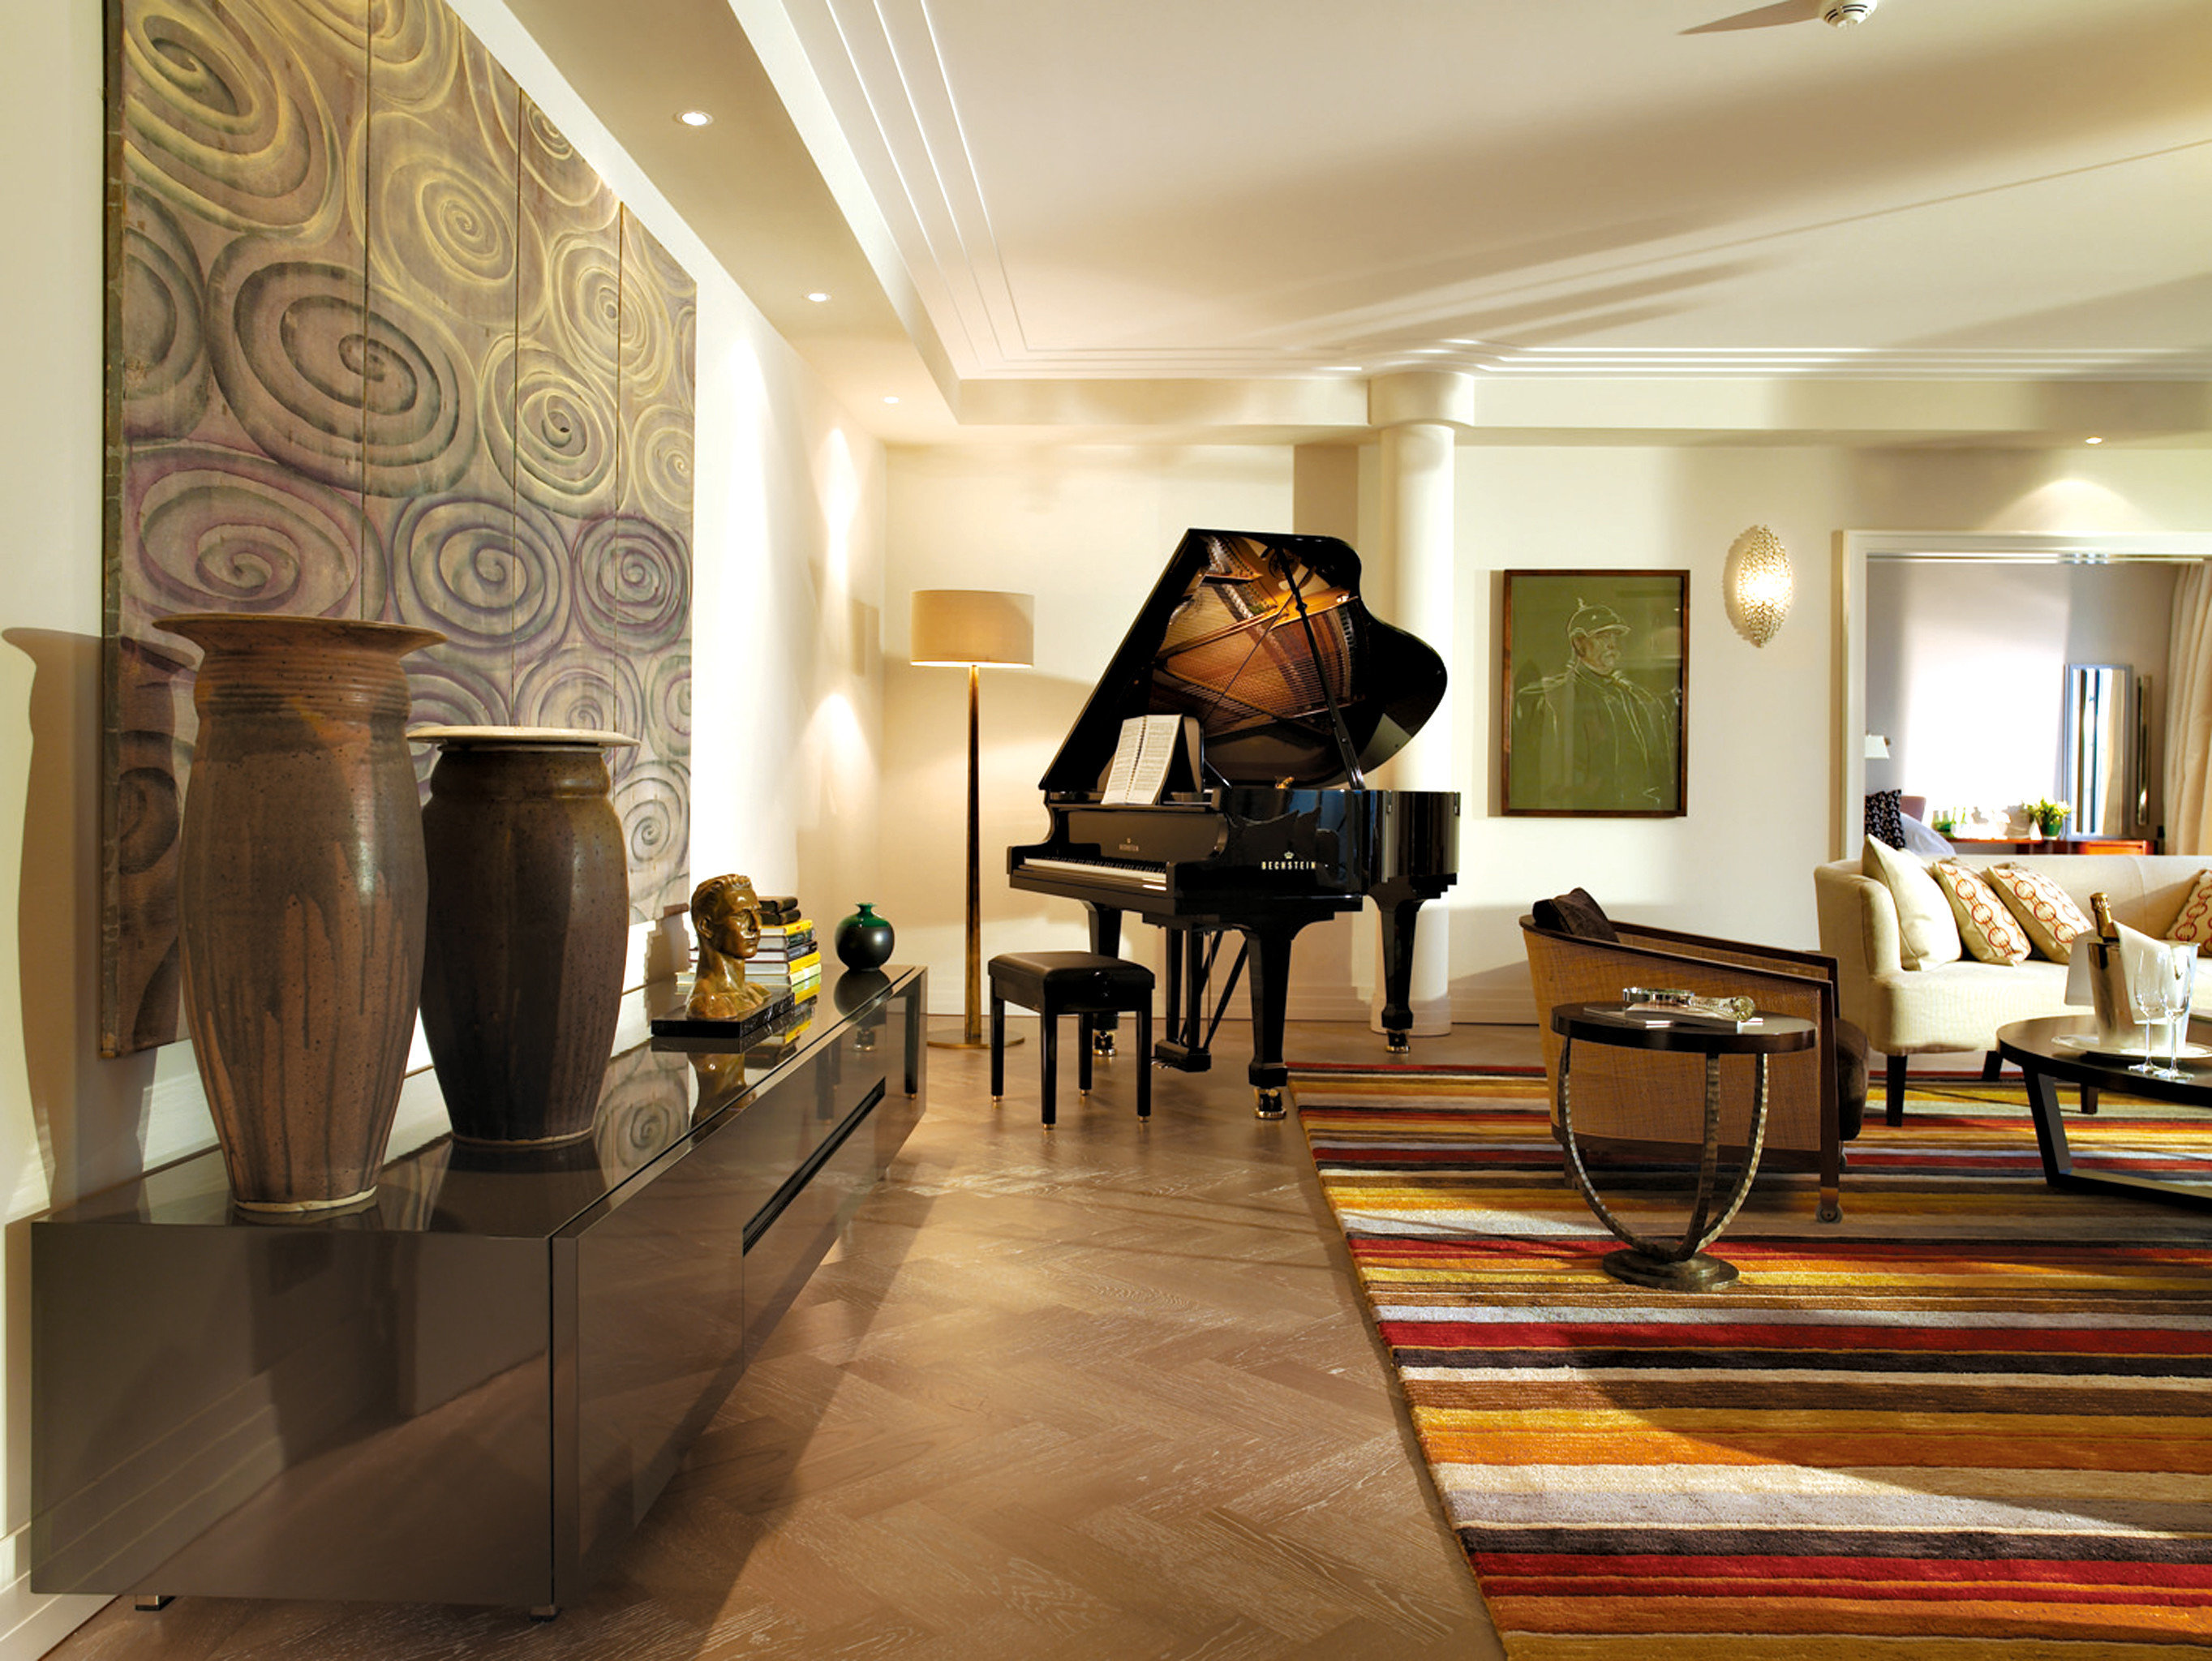 Lounge Luxury Modern Lobby property home living room flooring Boutique hall tourist attraction